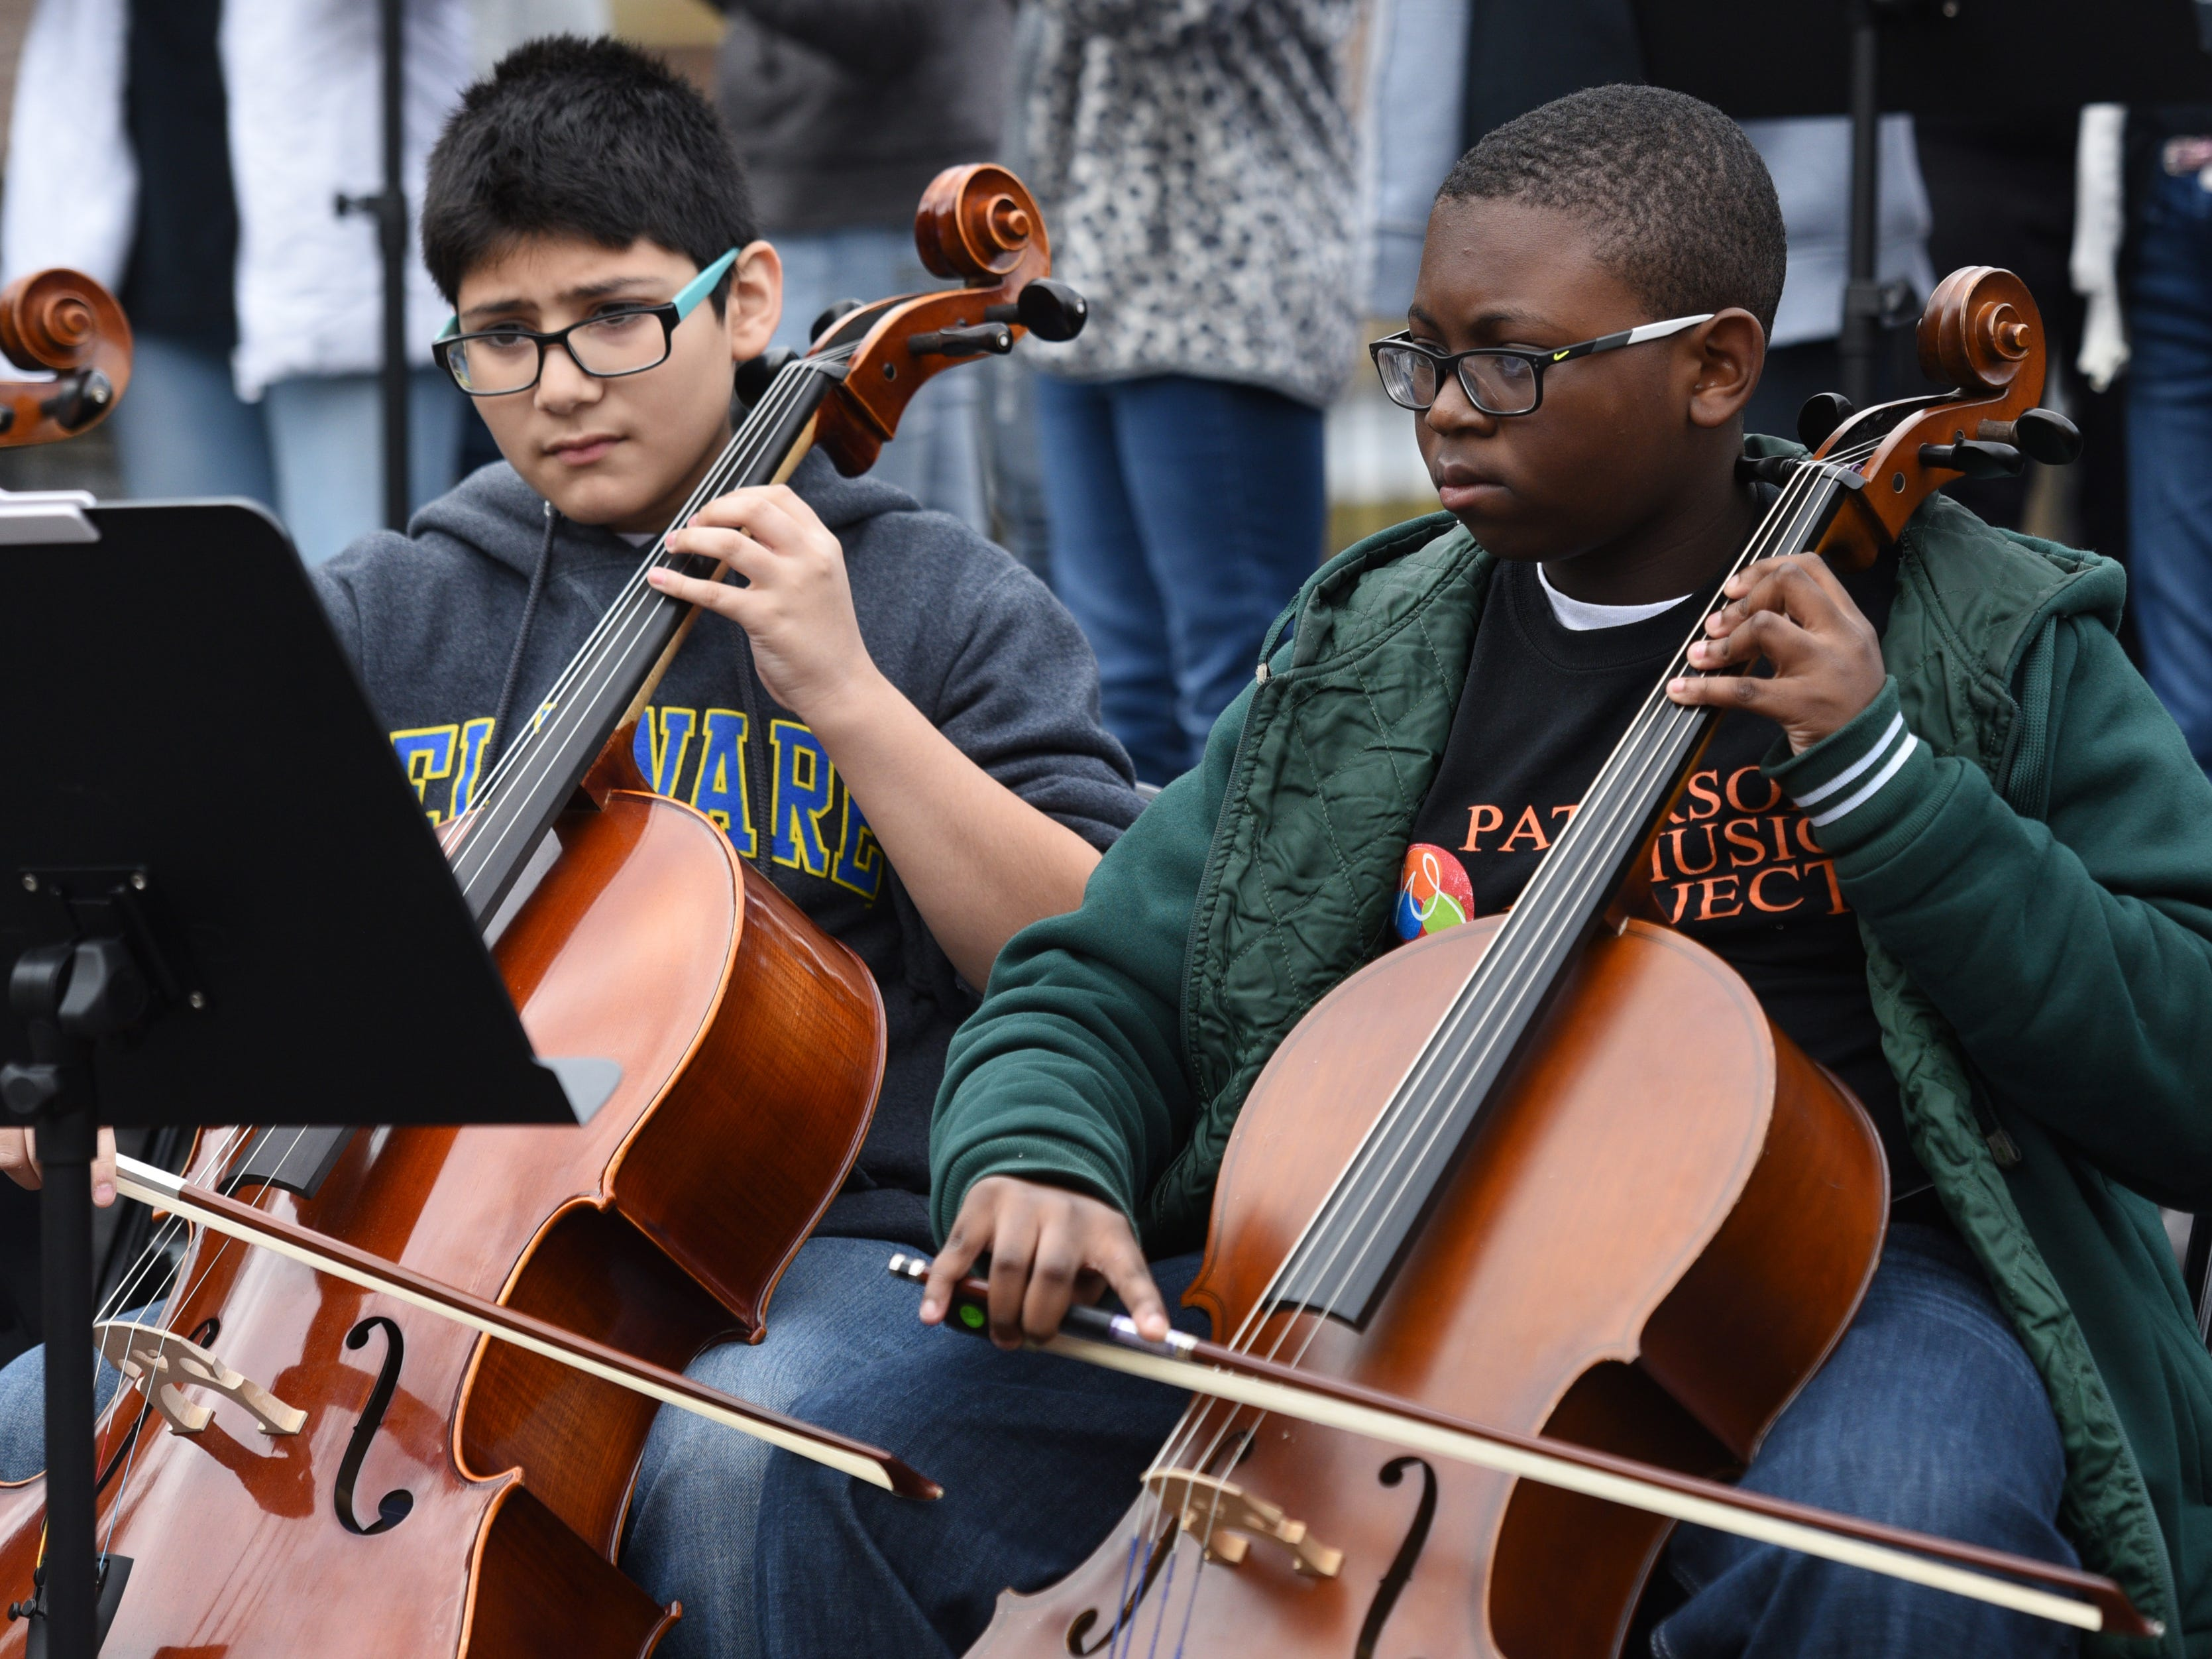 The 2018 Art in the Park Showcase was held in Overlook Park, located at the Paterson Great Falls National Historical Park on Sunday, October 14, 2018. Members of the Paterson Music Project perform during the showcase.